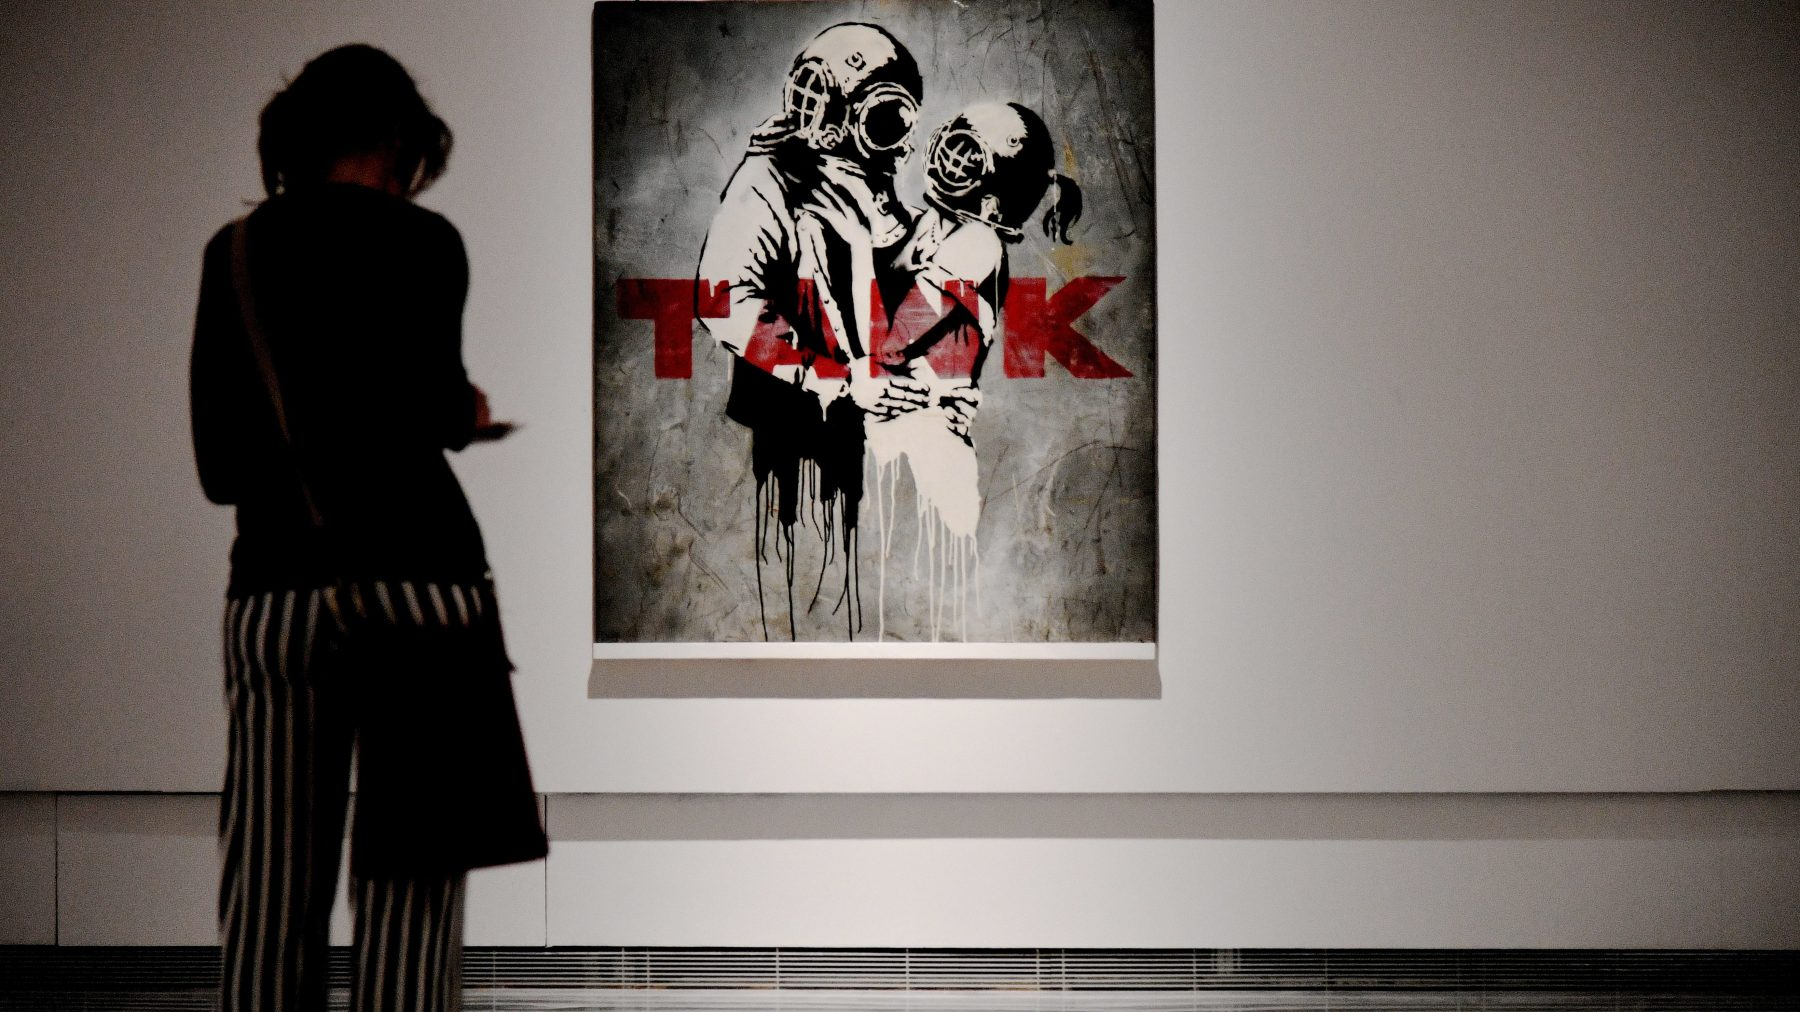 'Think Tank' by English street artist Banksy, on display at Rome's Palazzo Cipolla in May 2016. The piece was sourced from private collectors. (Vincenzo Pinto/AFP/Getty Images)